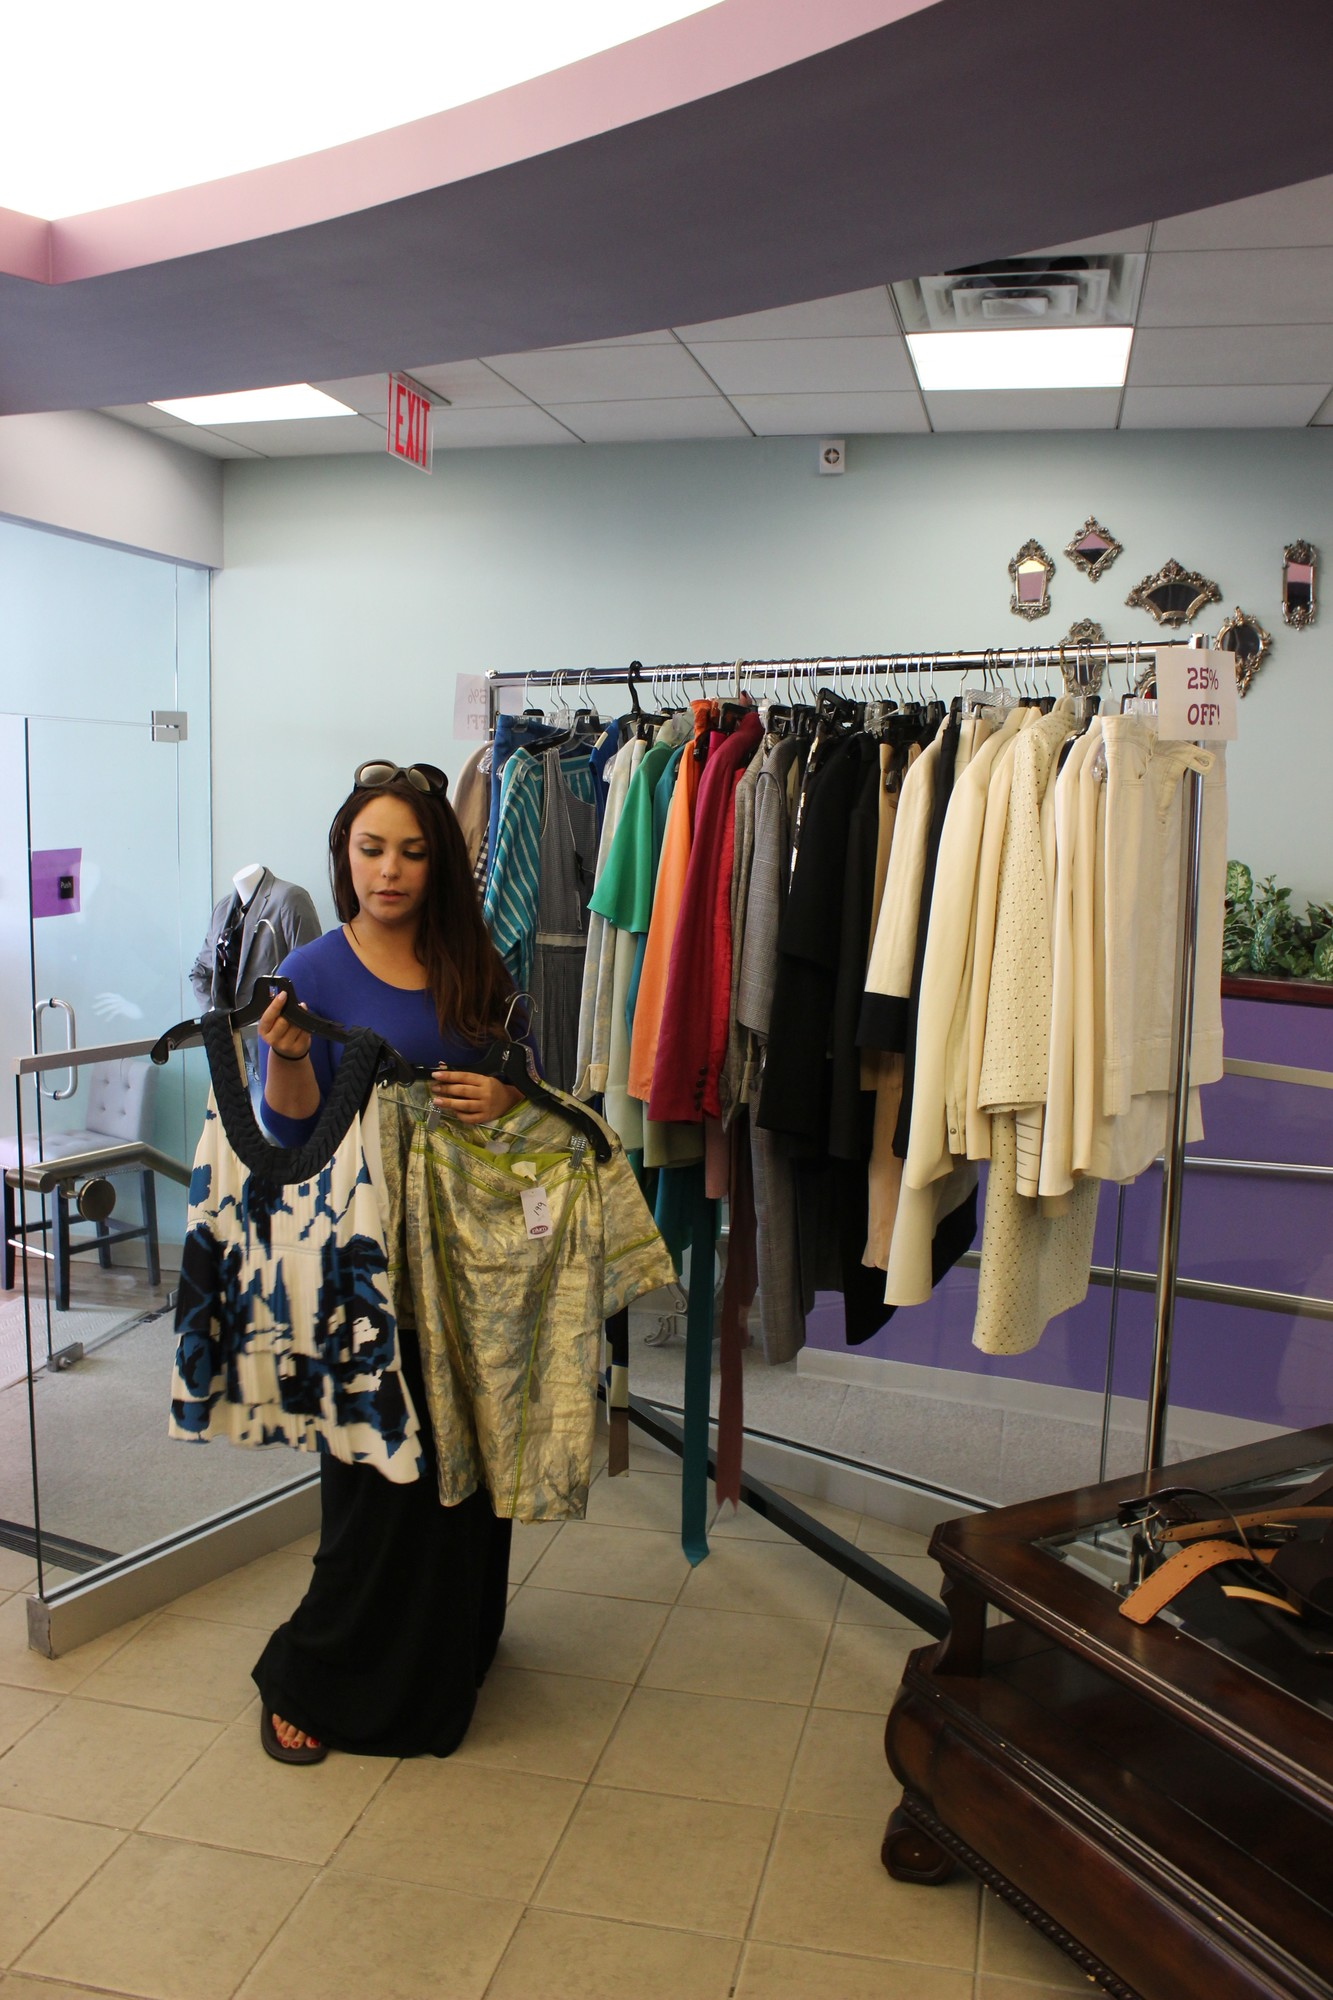 Discounted merchandise was available at more than 80 stores during Cedarhurst's annual summer sidewalk sale. Plum employee Nicole Obshatcko held a blouse and skirt, both marked 25 percent off the regular price.